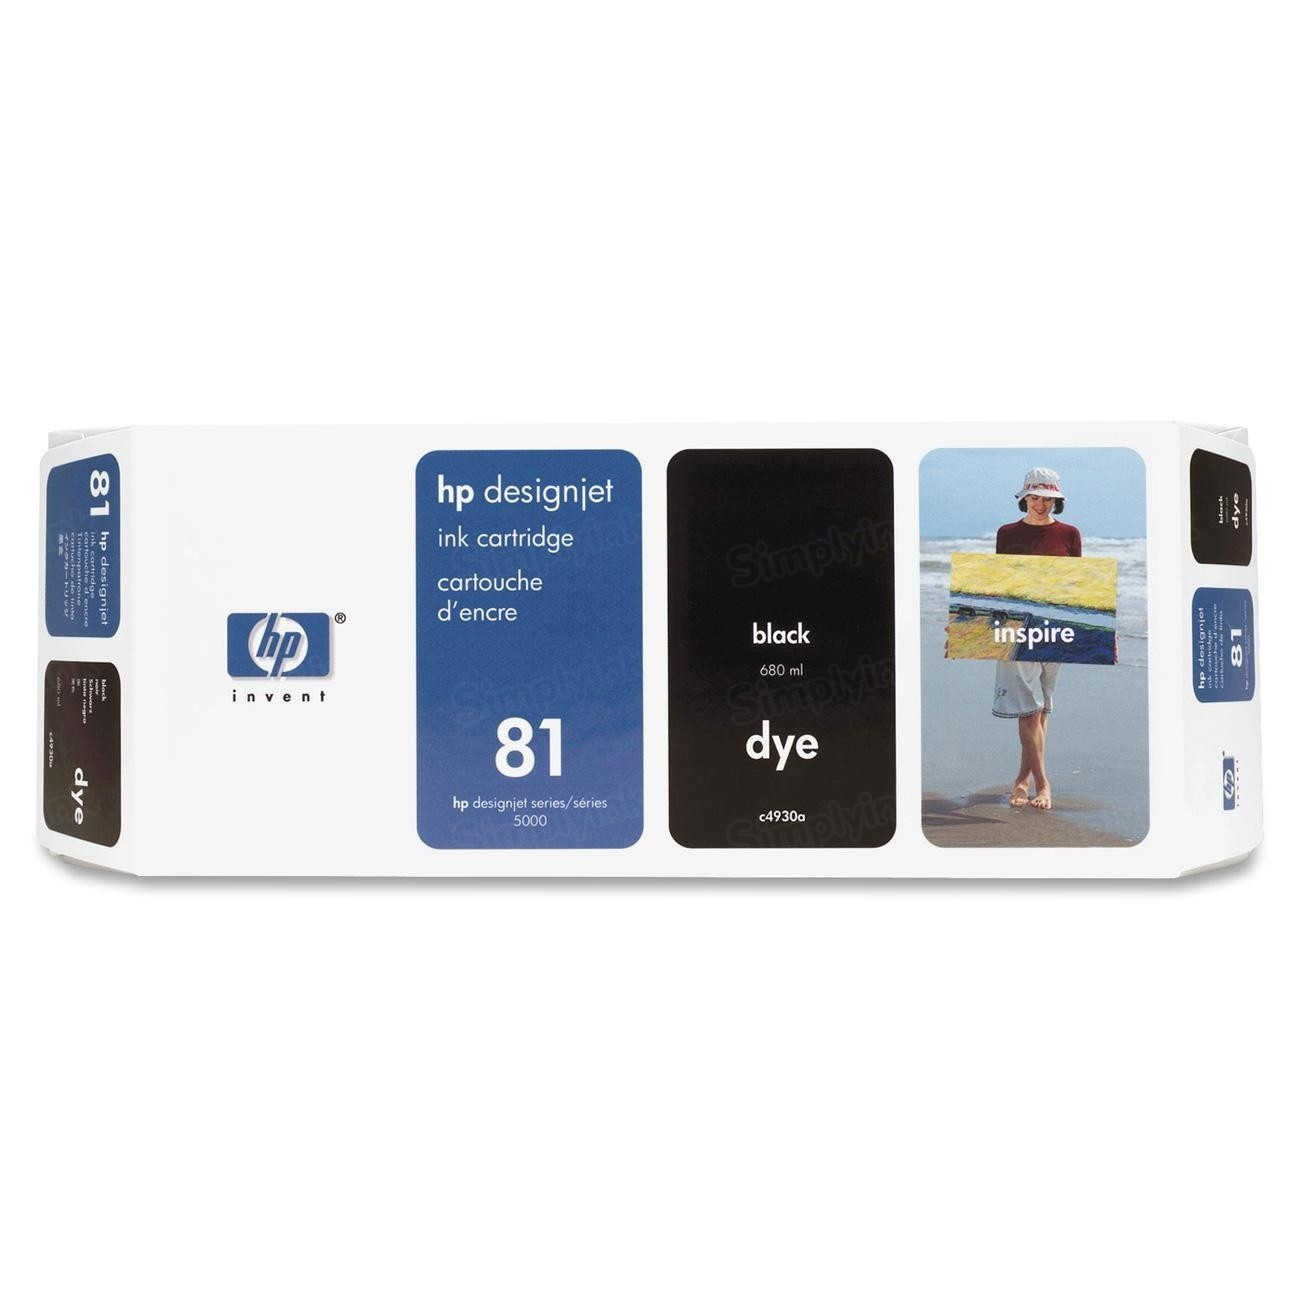 HP 81 Black Original Ink Cartridge C4930A